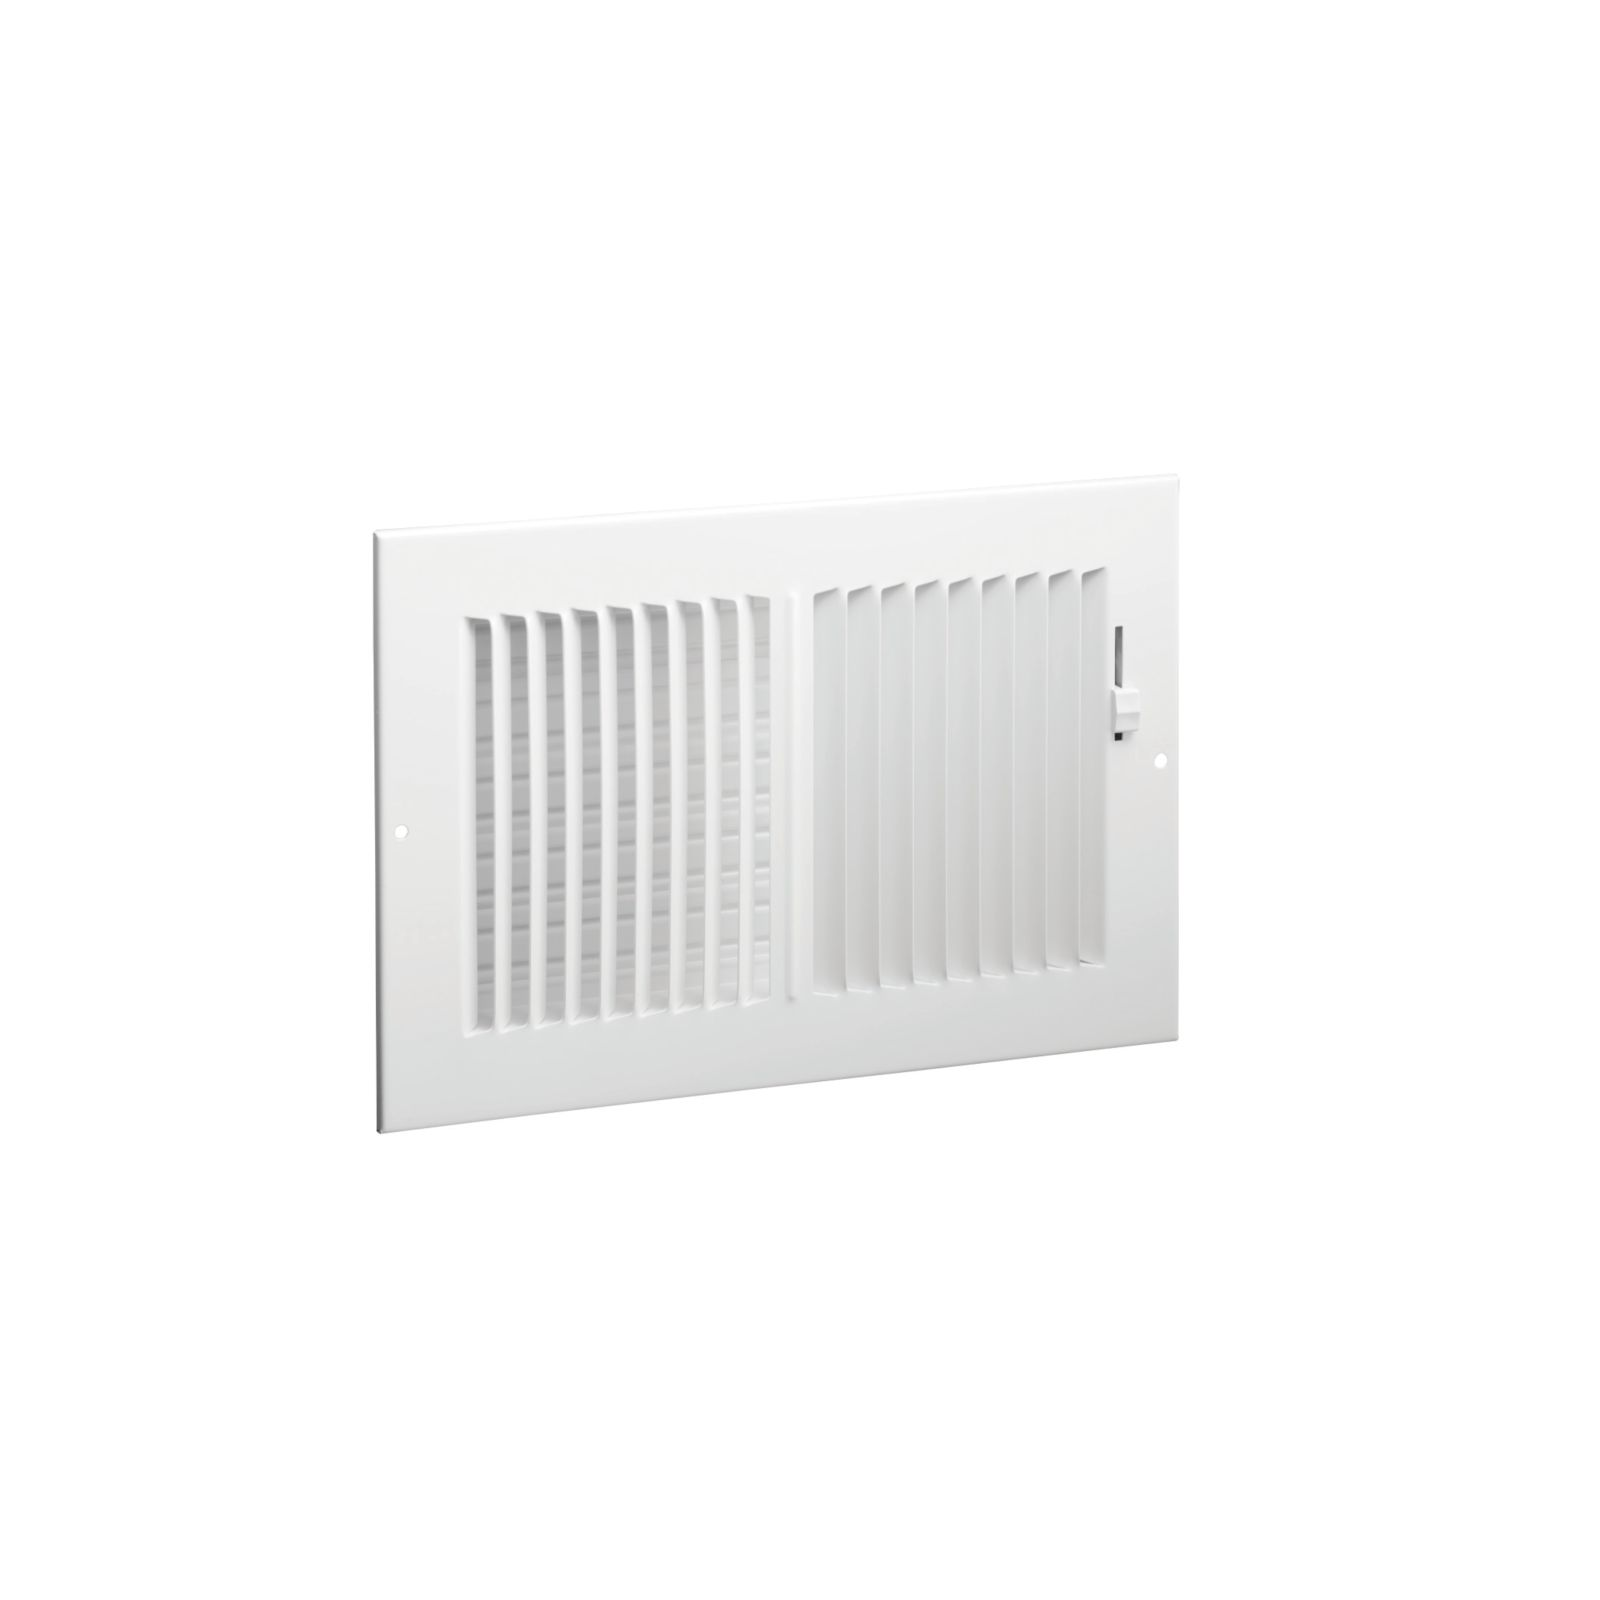 "Hart & Cooley 703917 - #682M Steel 2-Way Sidewall/Ceiling Register, Multi-Shutter Damper with Metal Handle, White, 8"" X 4"""